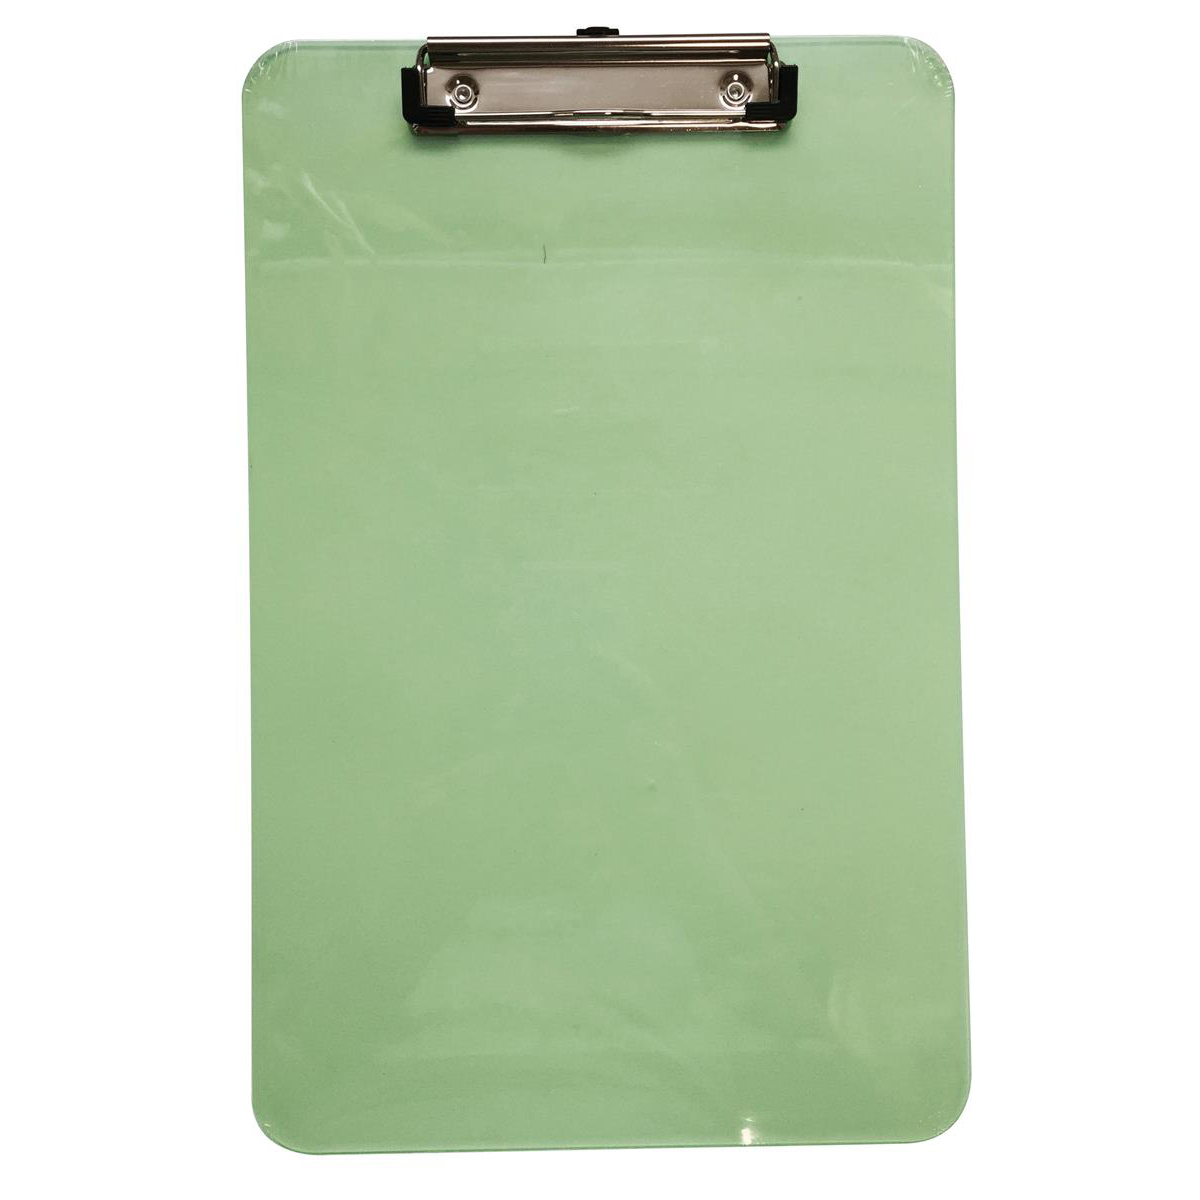 5 Star Office Clipboard Polypropylene Shatterproof Pink or Green or Turquoise